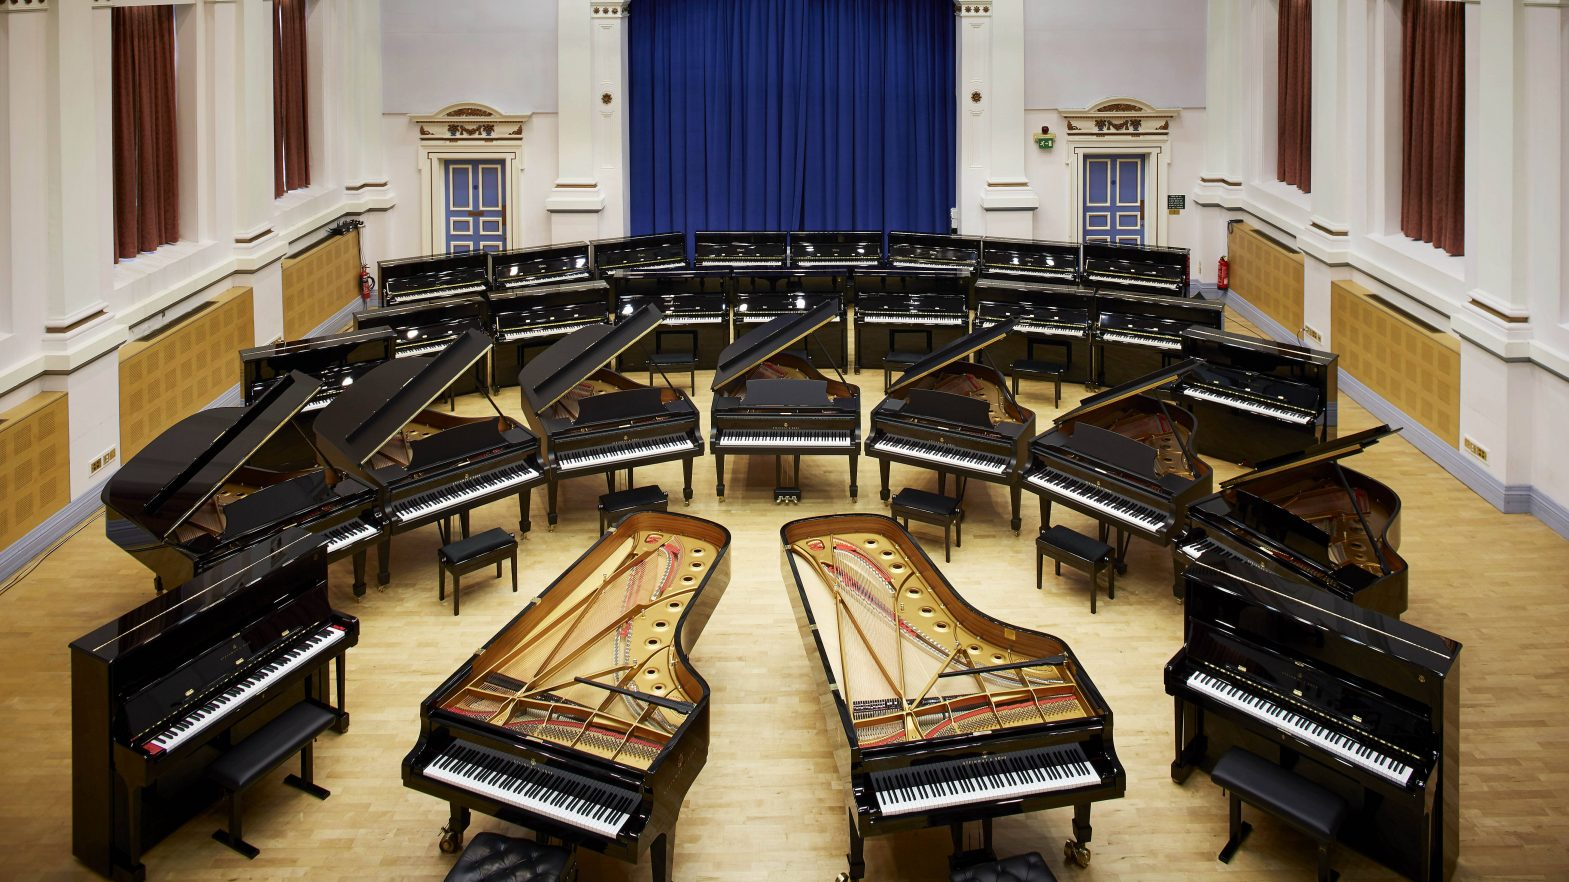 Steinway & Sons pianos at Leeds University